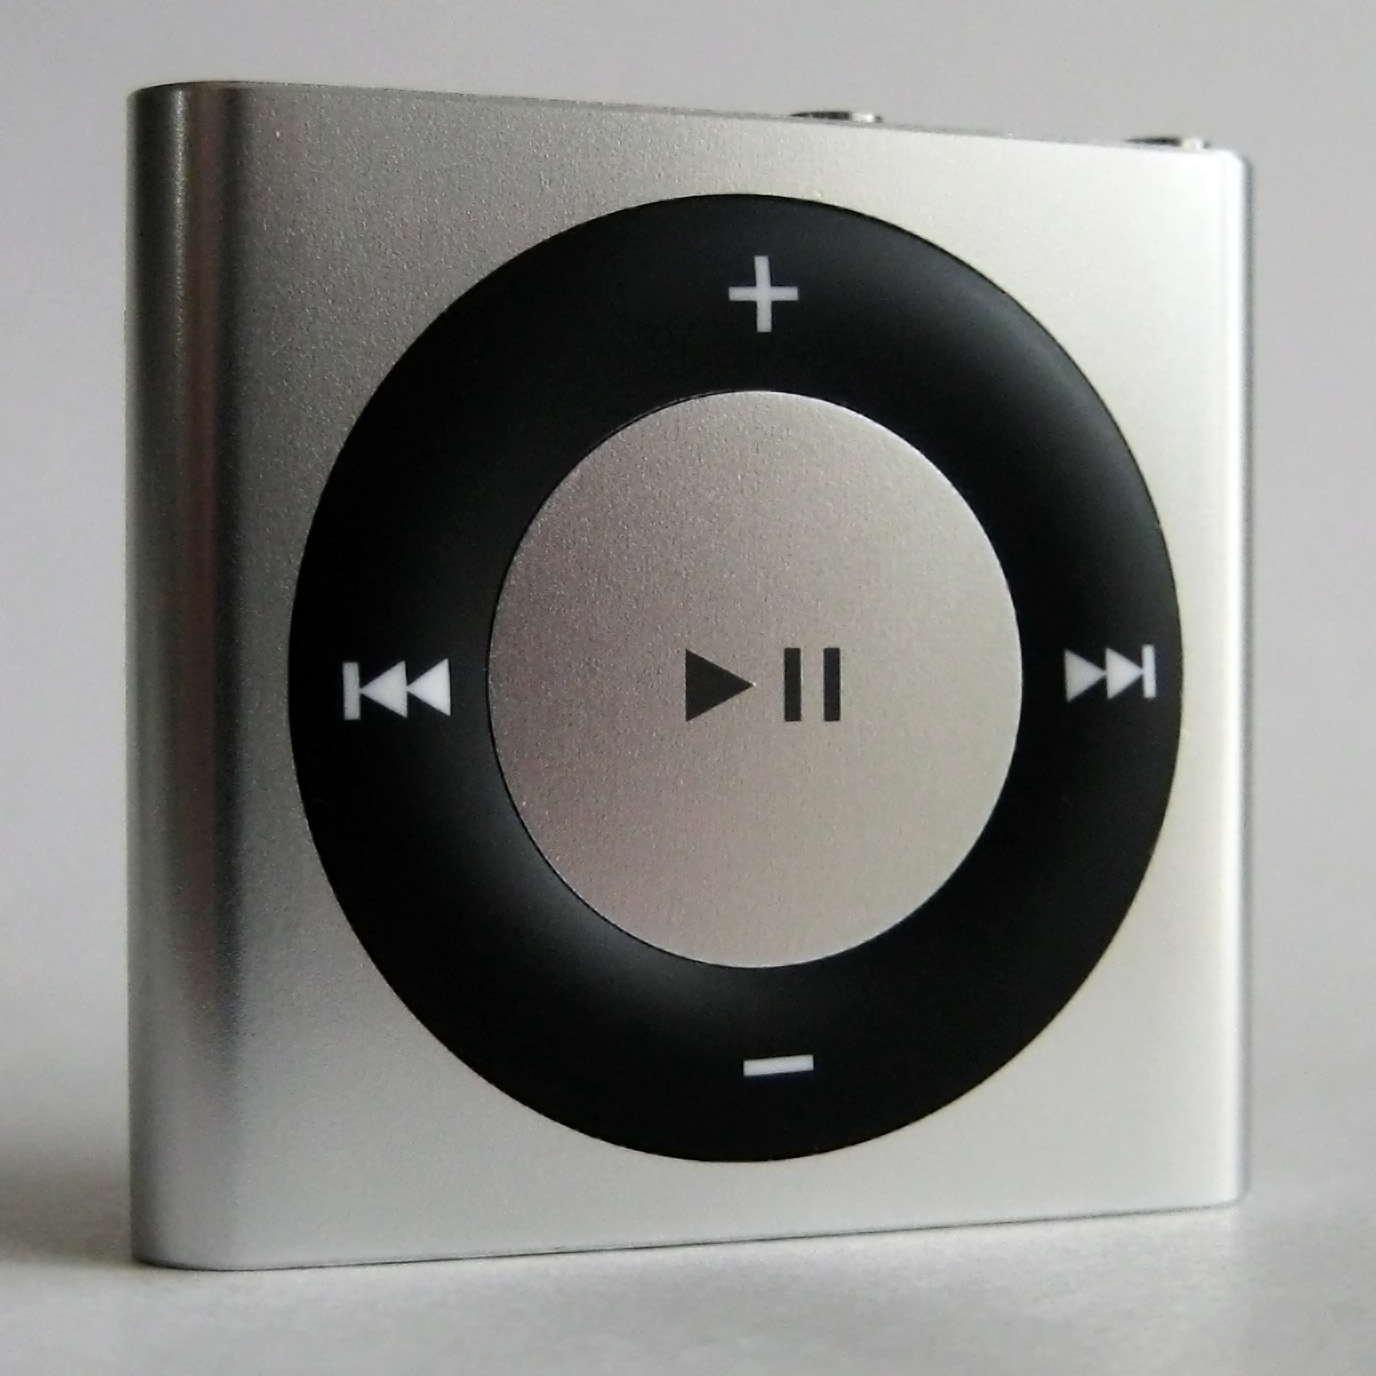 ipod shuffle 3rd generation how to use